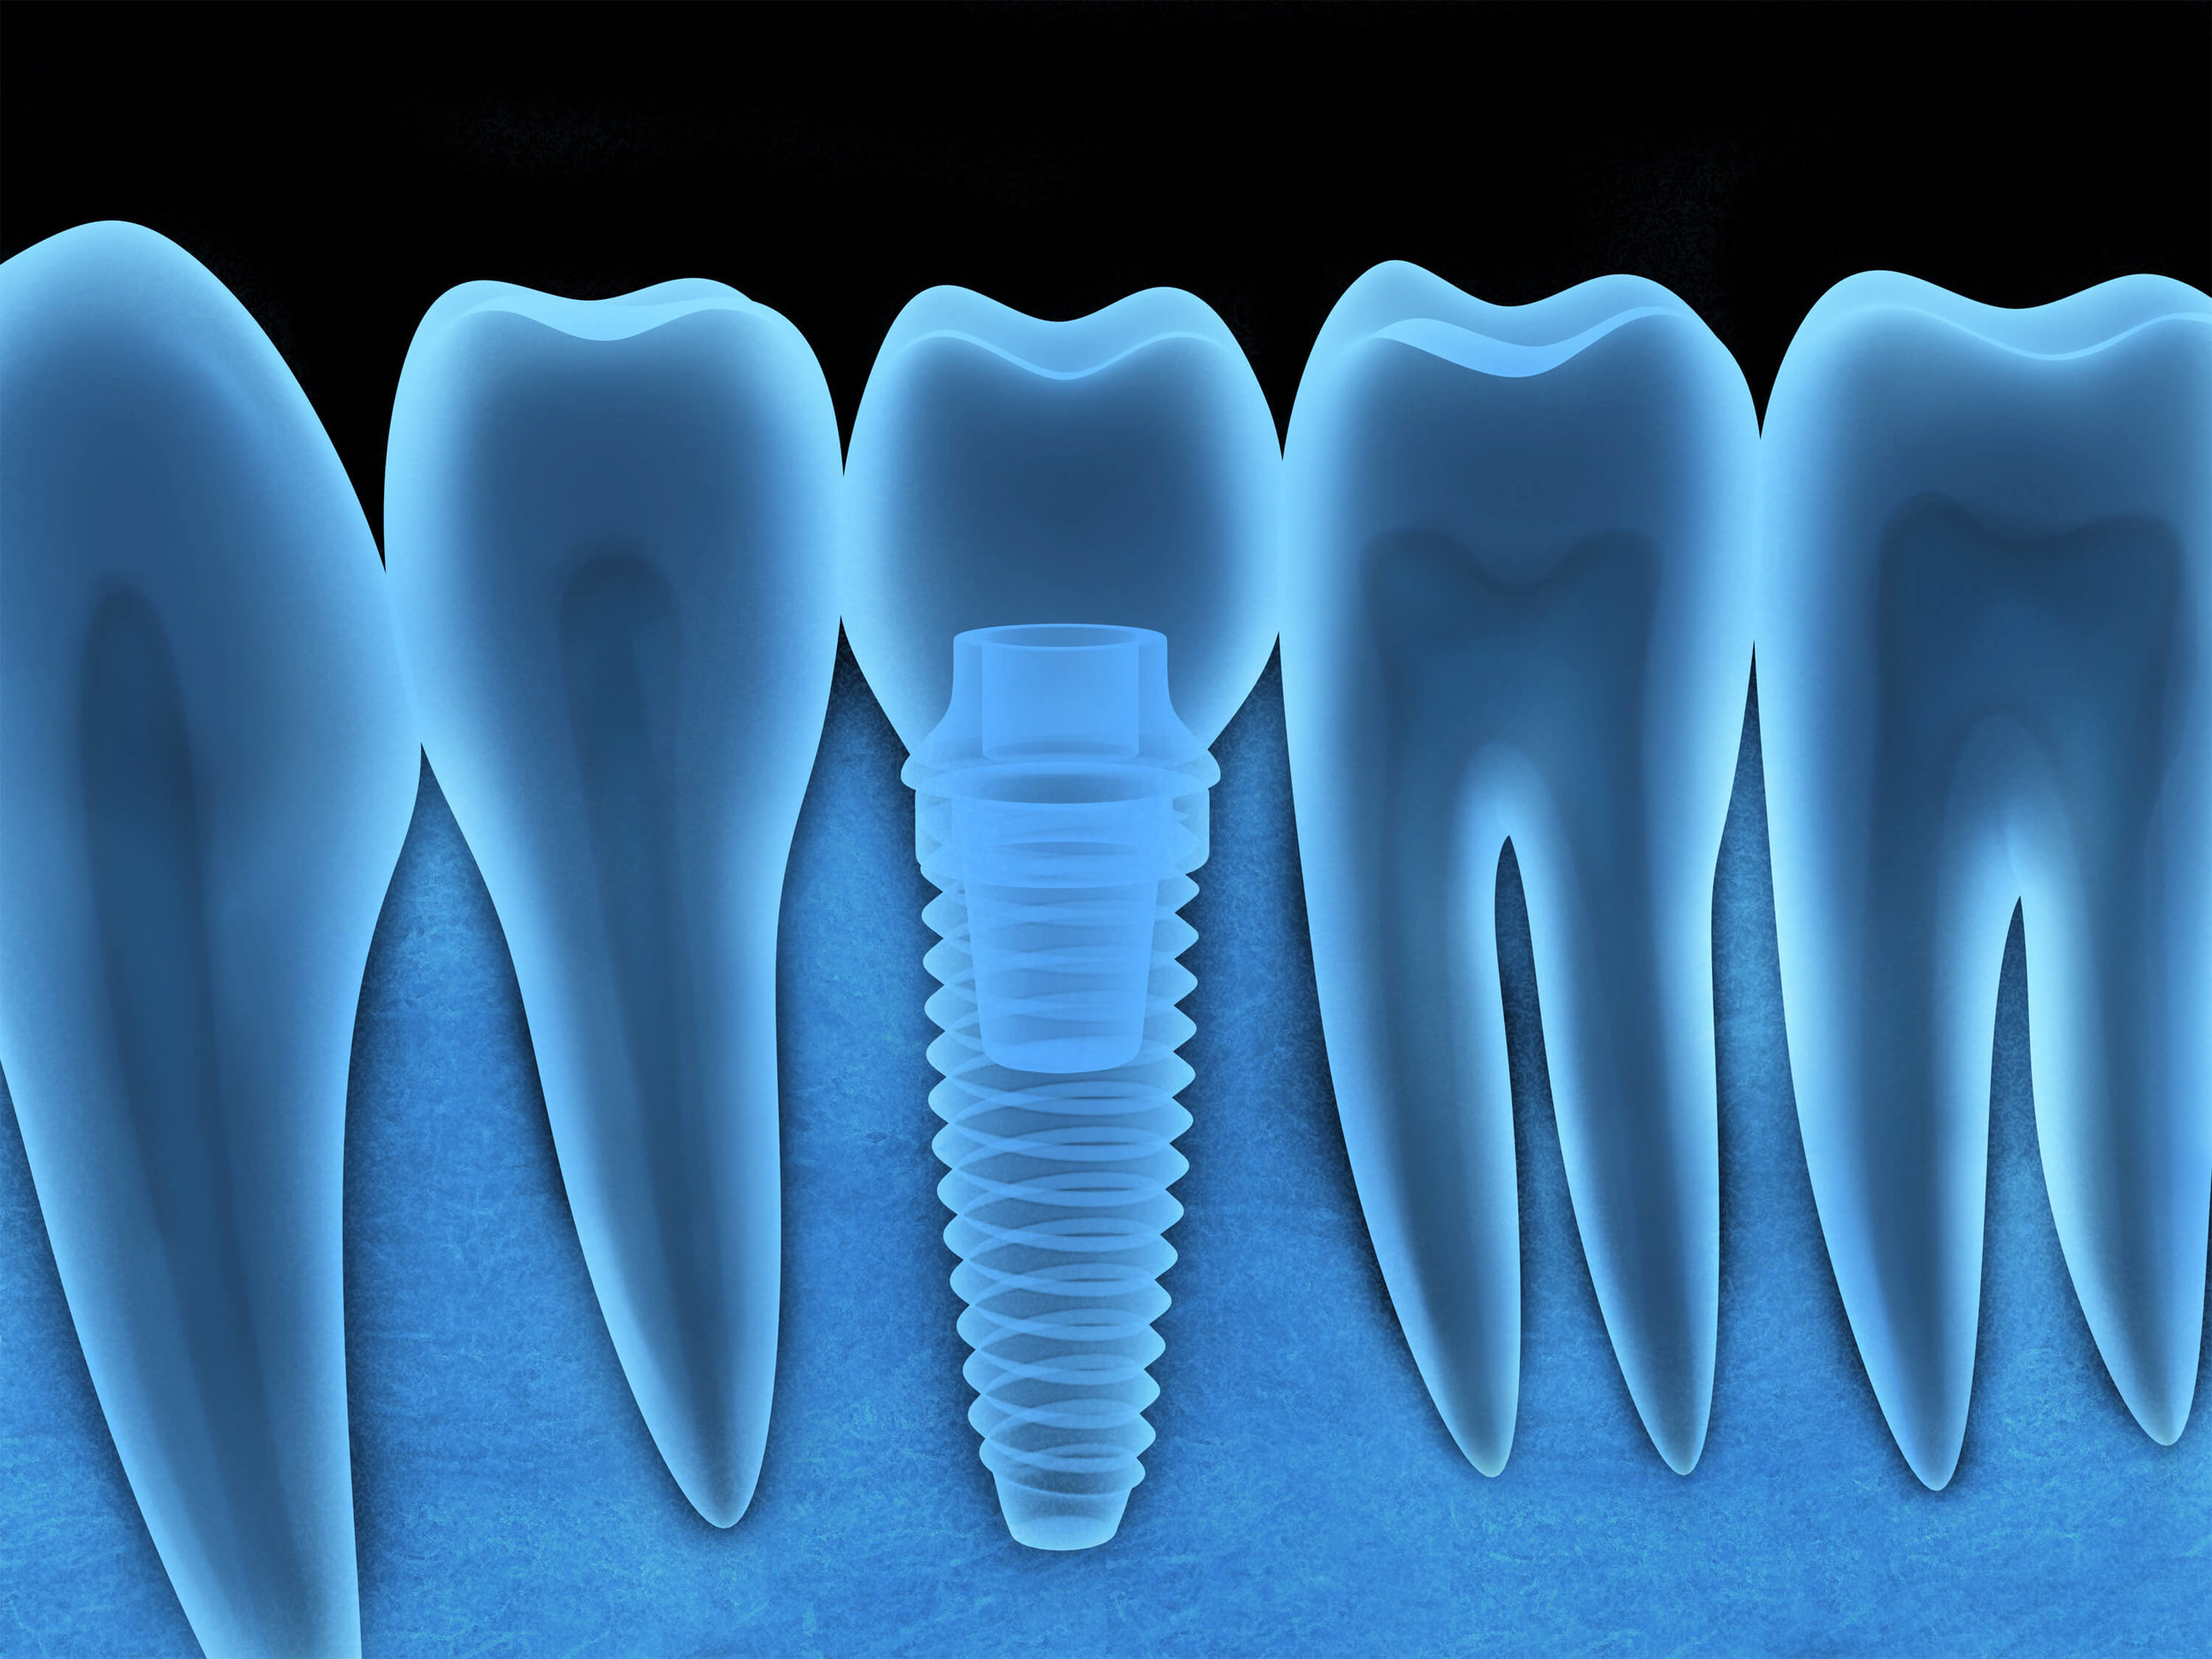 Town Center Dentistry in Rancho Bernardo offers dental implants. Learn the difference between dental implants and a dental bridge.